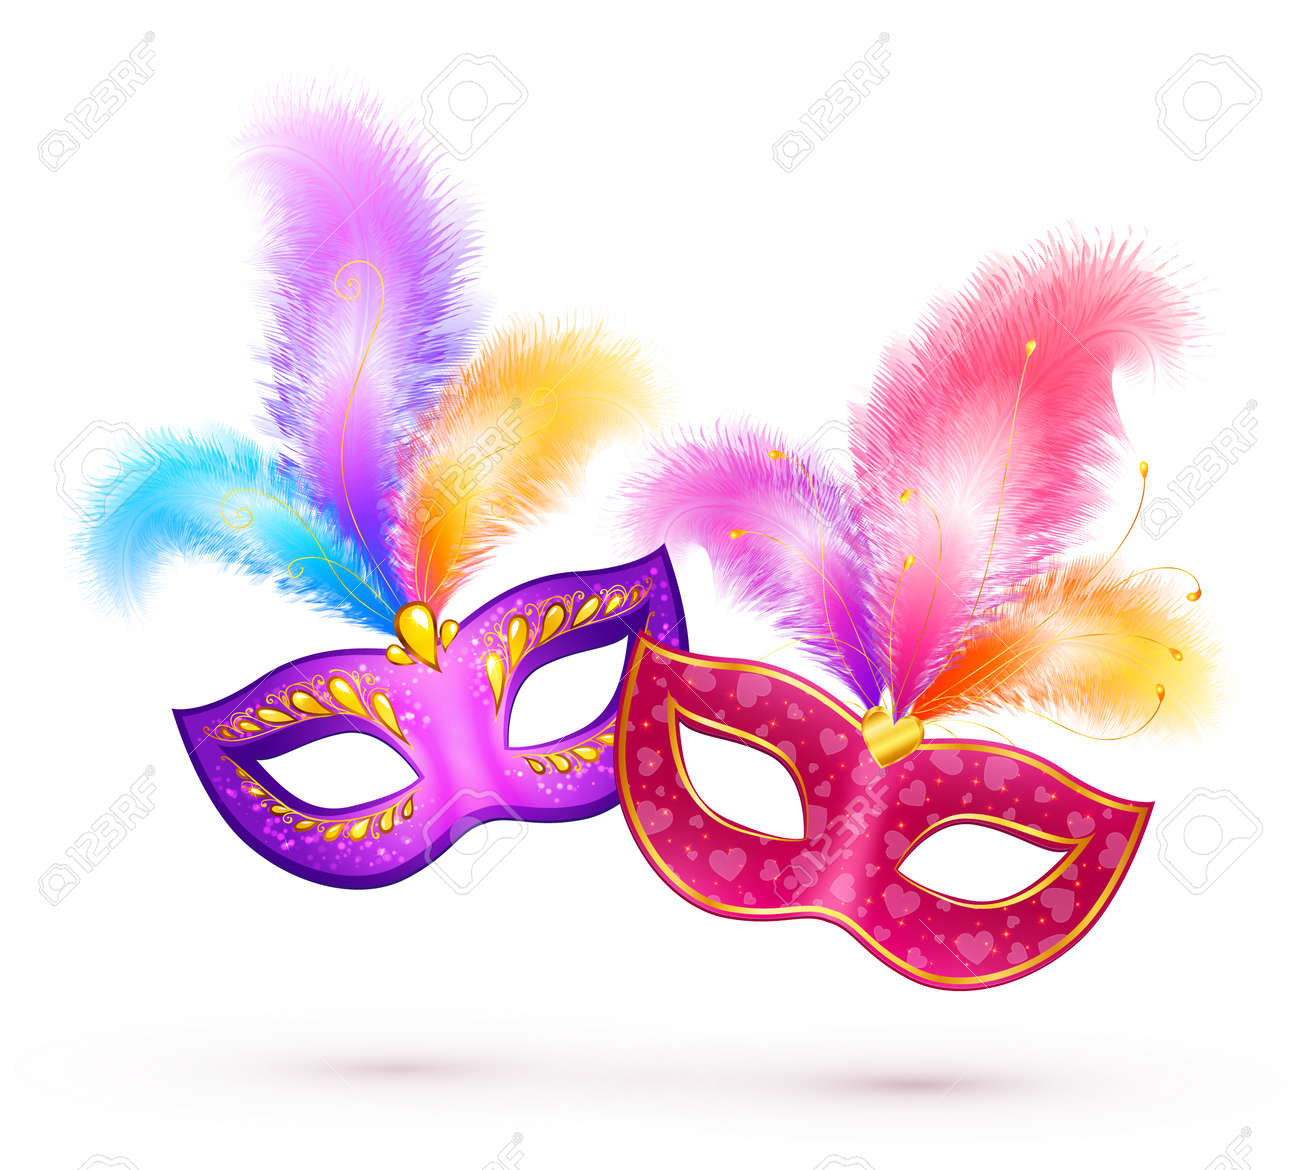 pair of bright carnival masks with colorful feathers royalty free